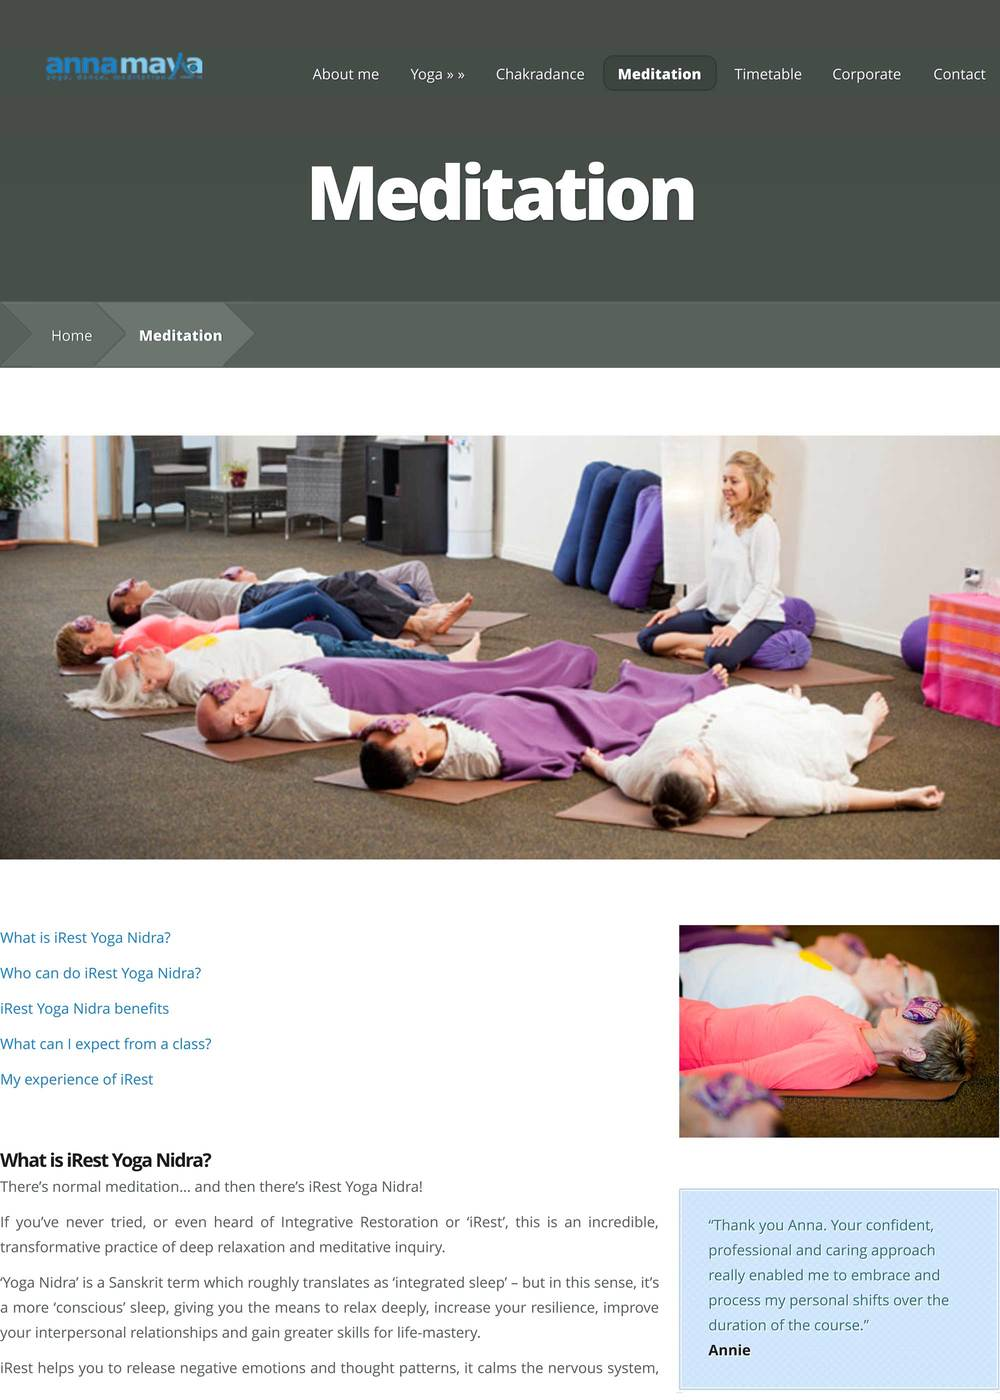 Yoga teacher website copy